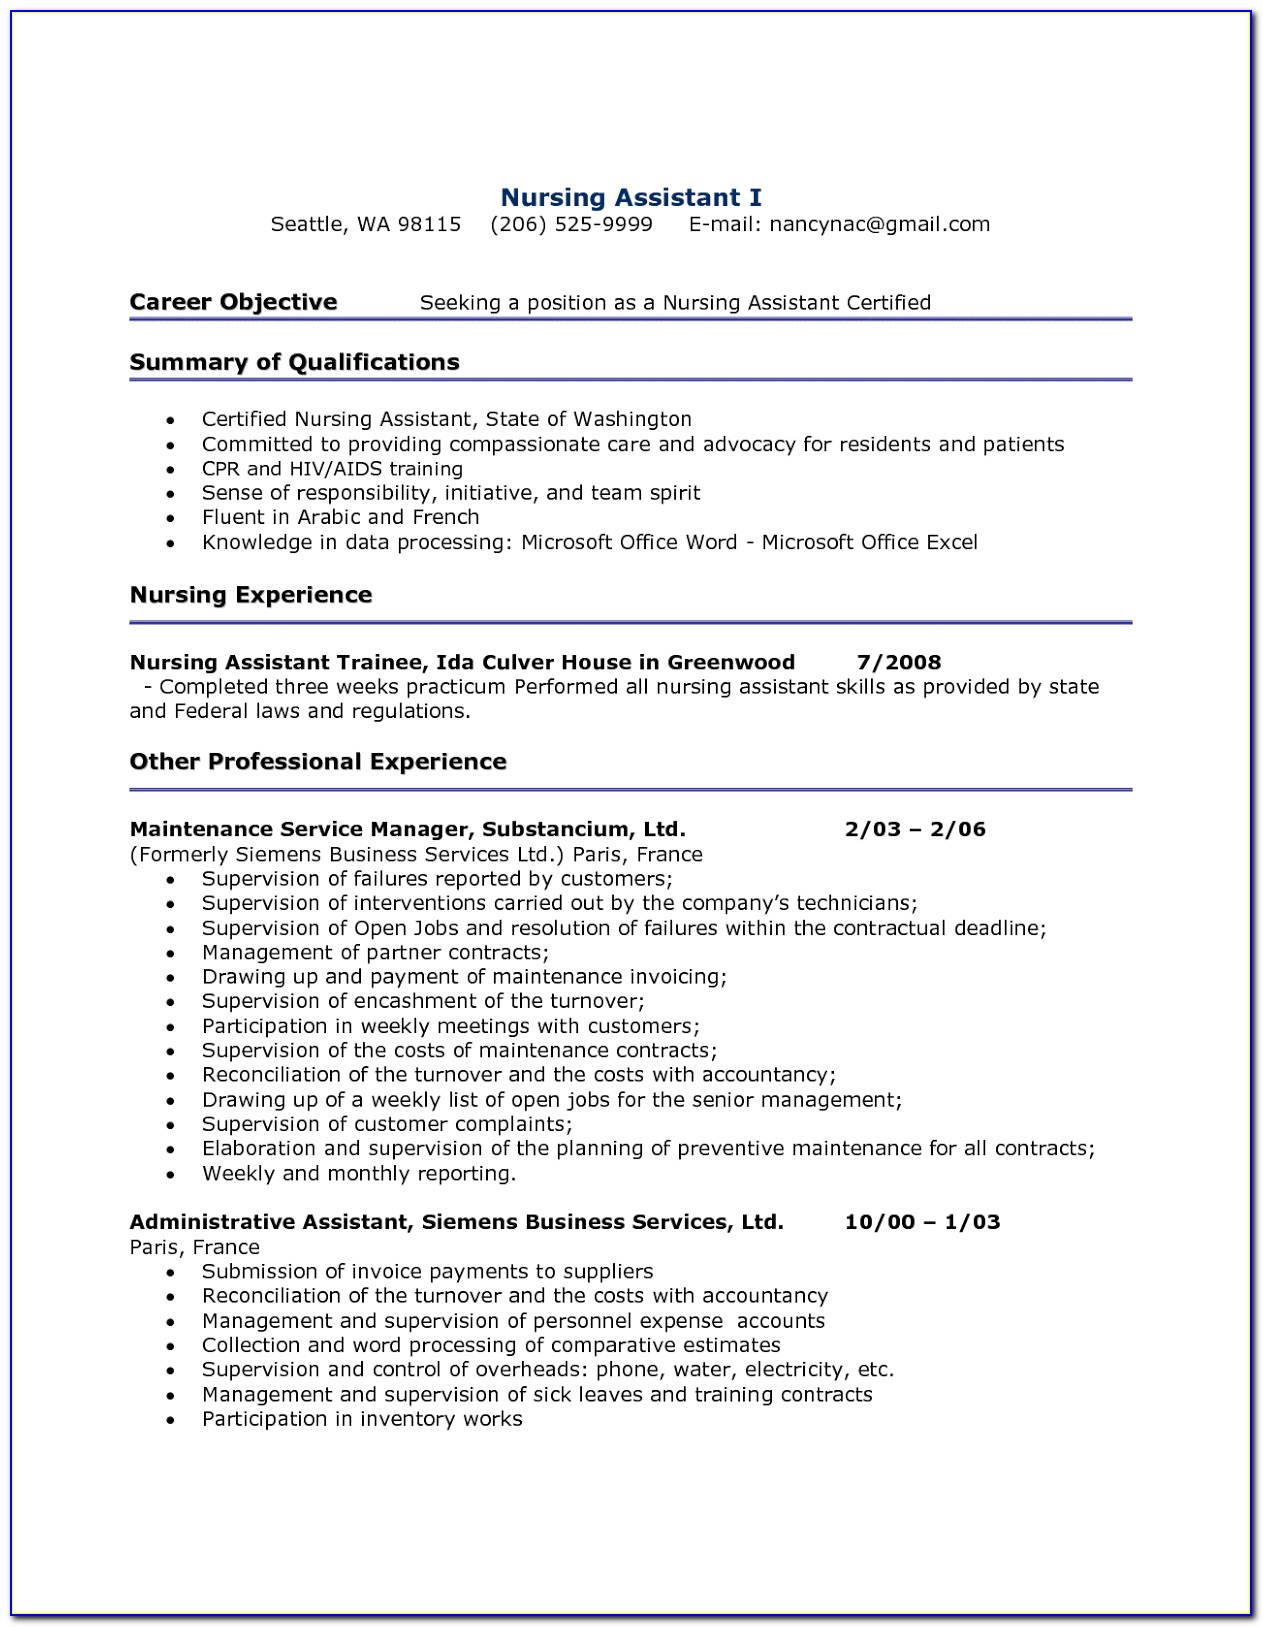 Resume Format For Nursing Assistant